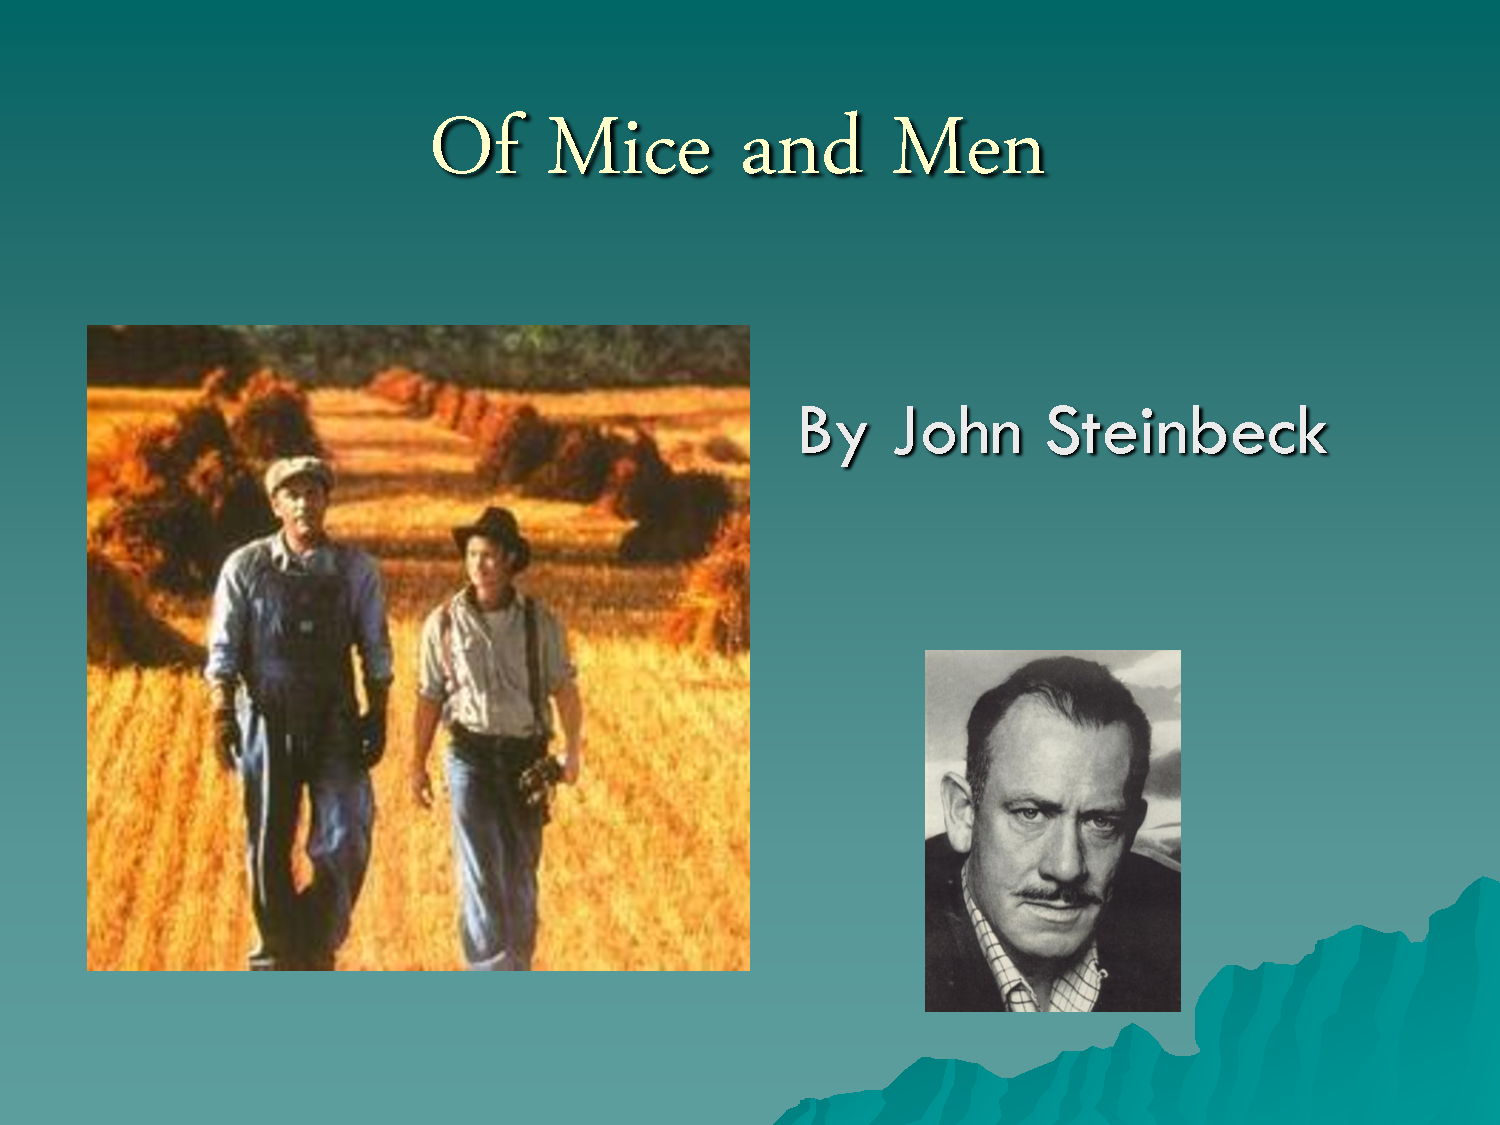 of mice and men george milton Nowhere to call home: the men and (one) woman of of mice and men john steinbeck's 1937 novella, of mice and men, tells the story of itinerant farmworkers, george milton and lennie small, as they .